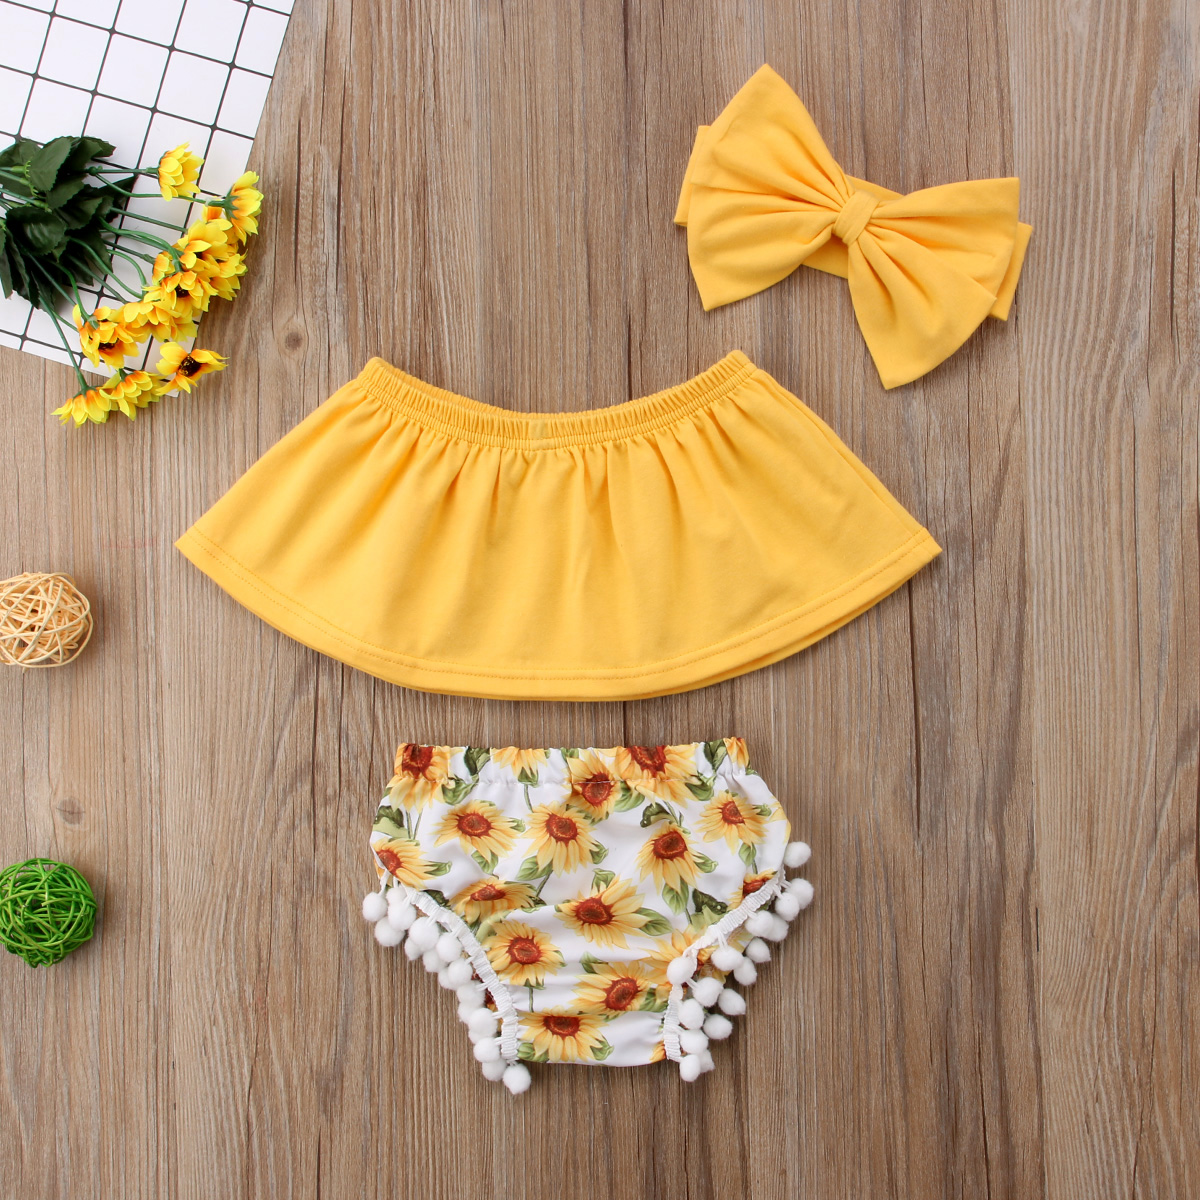 3pcs Set Newborn Kid Baby Girl Clothes Yellow Off Shouler Tops Headband Floral Tassels Bottoms Outfit Girls Summer Clothing ...